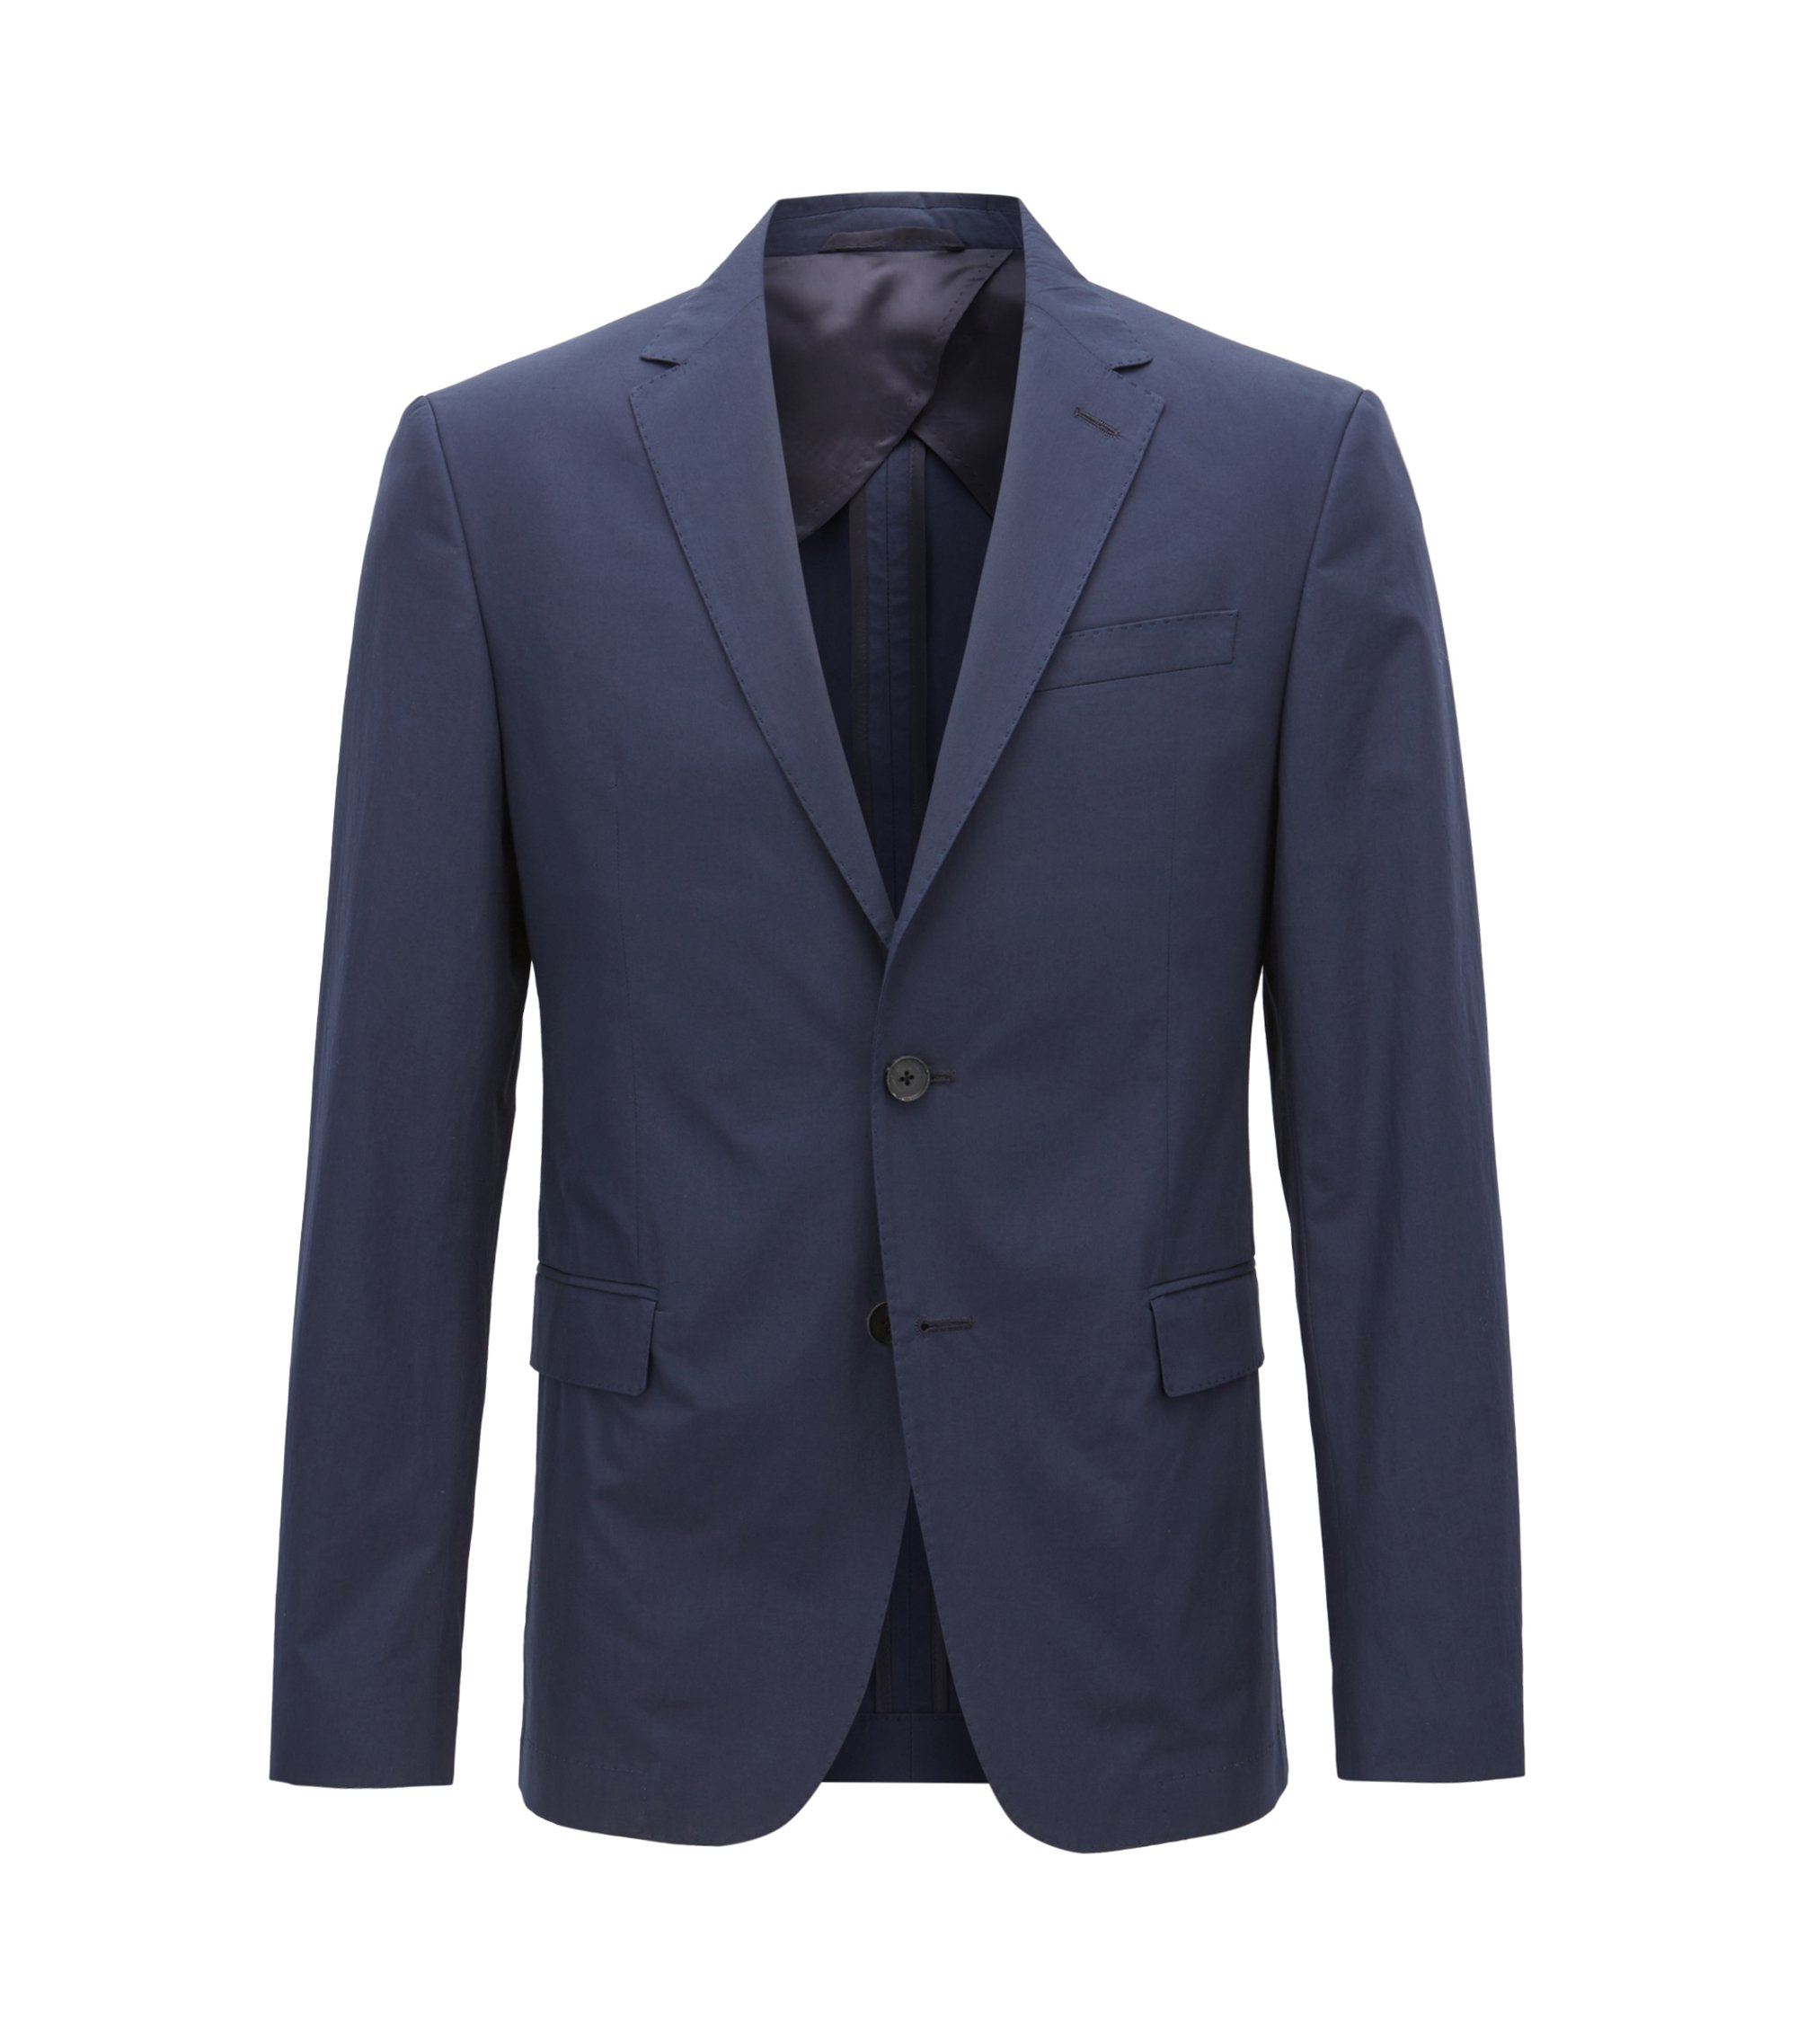 Giacca slim fit in popeline di cotone manocarta, Blu scuro